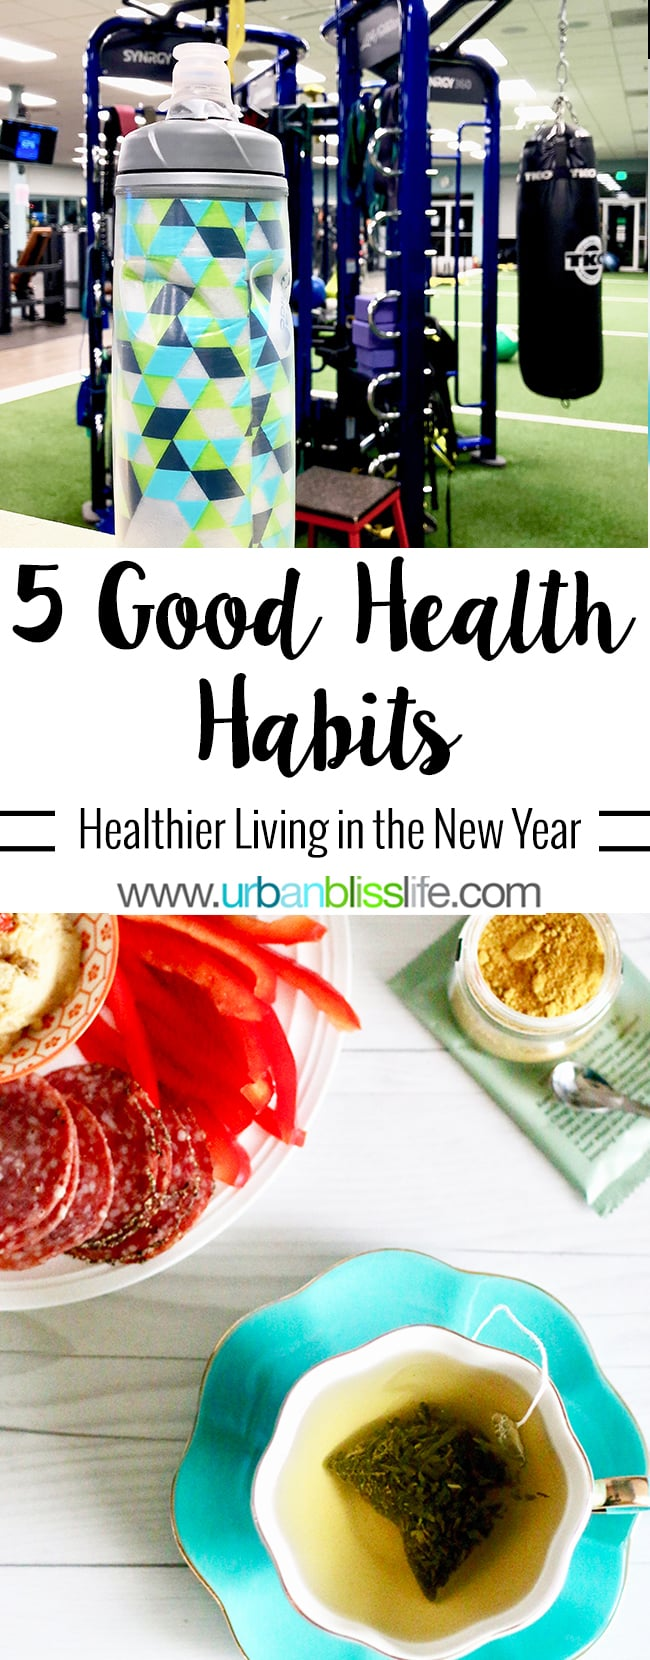 Good Health Habits to start in the new year, on UrbanBlissLife.com